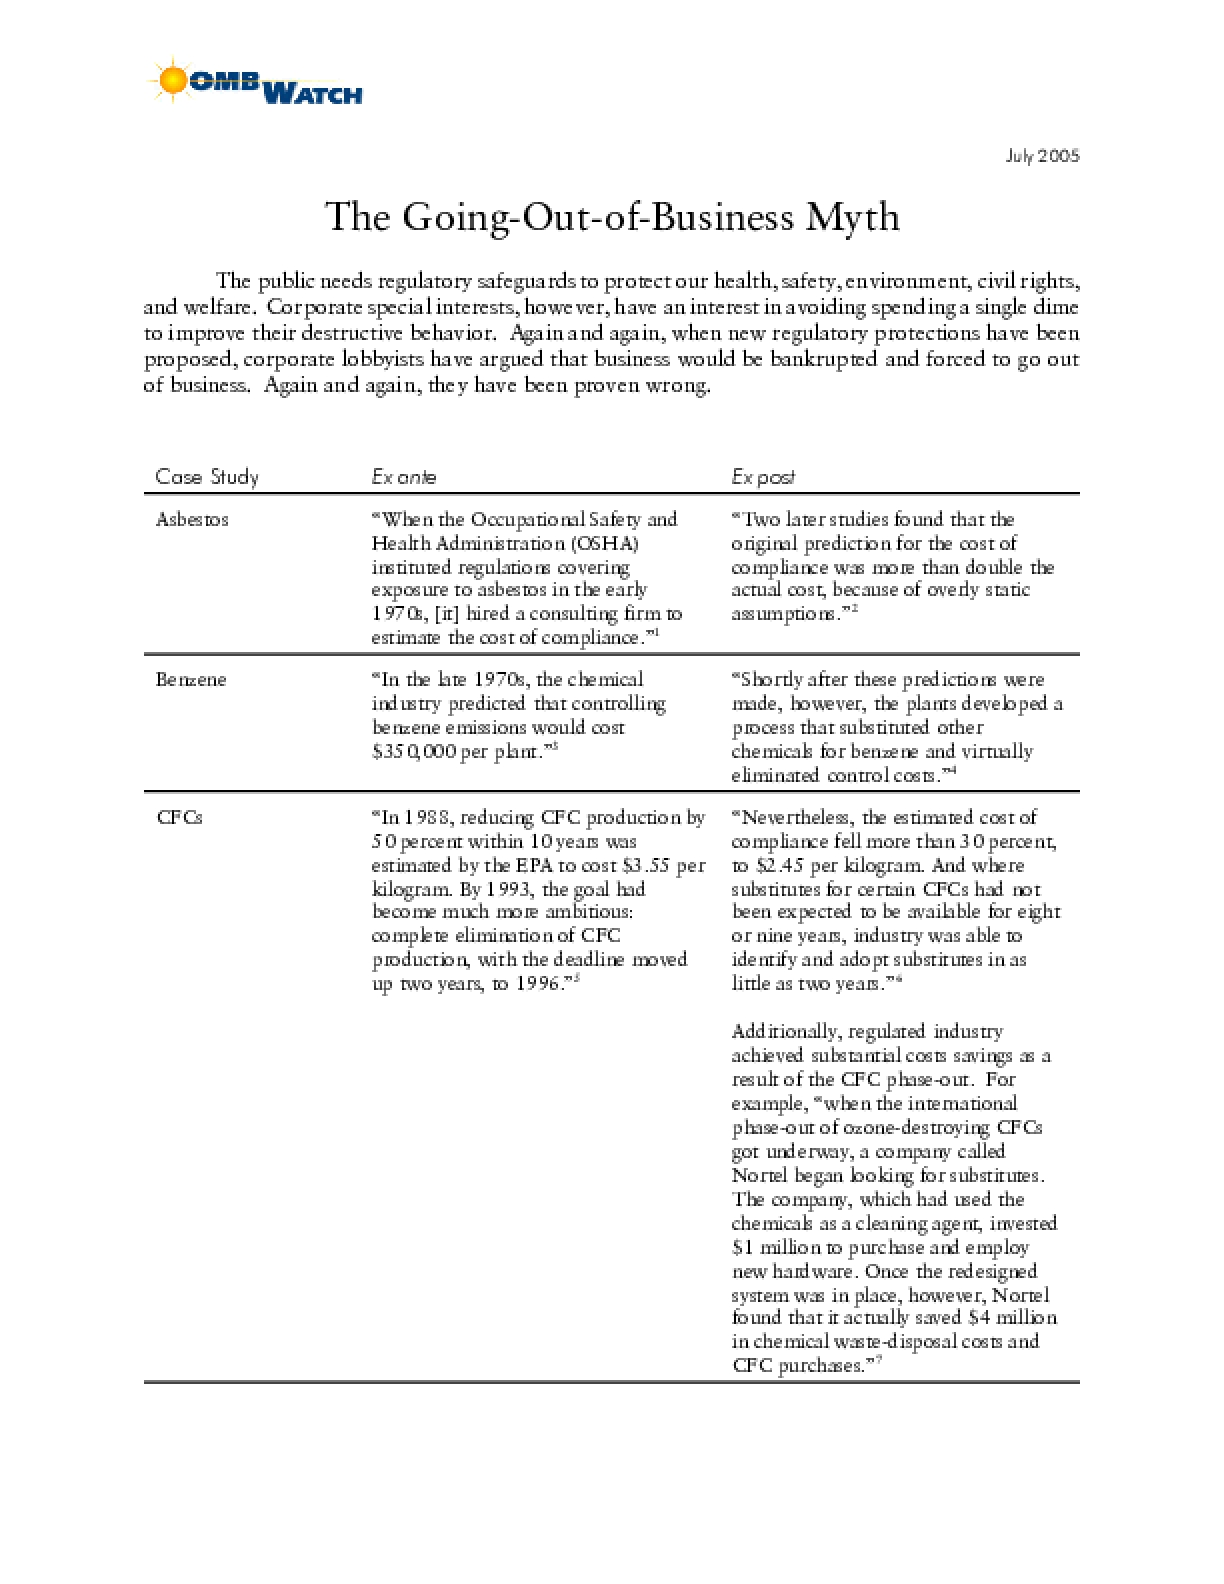 The Going-Out-of-Business Myth